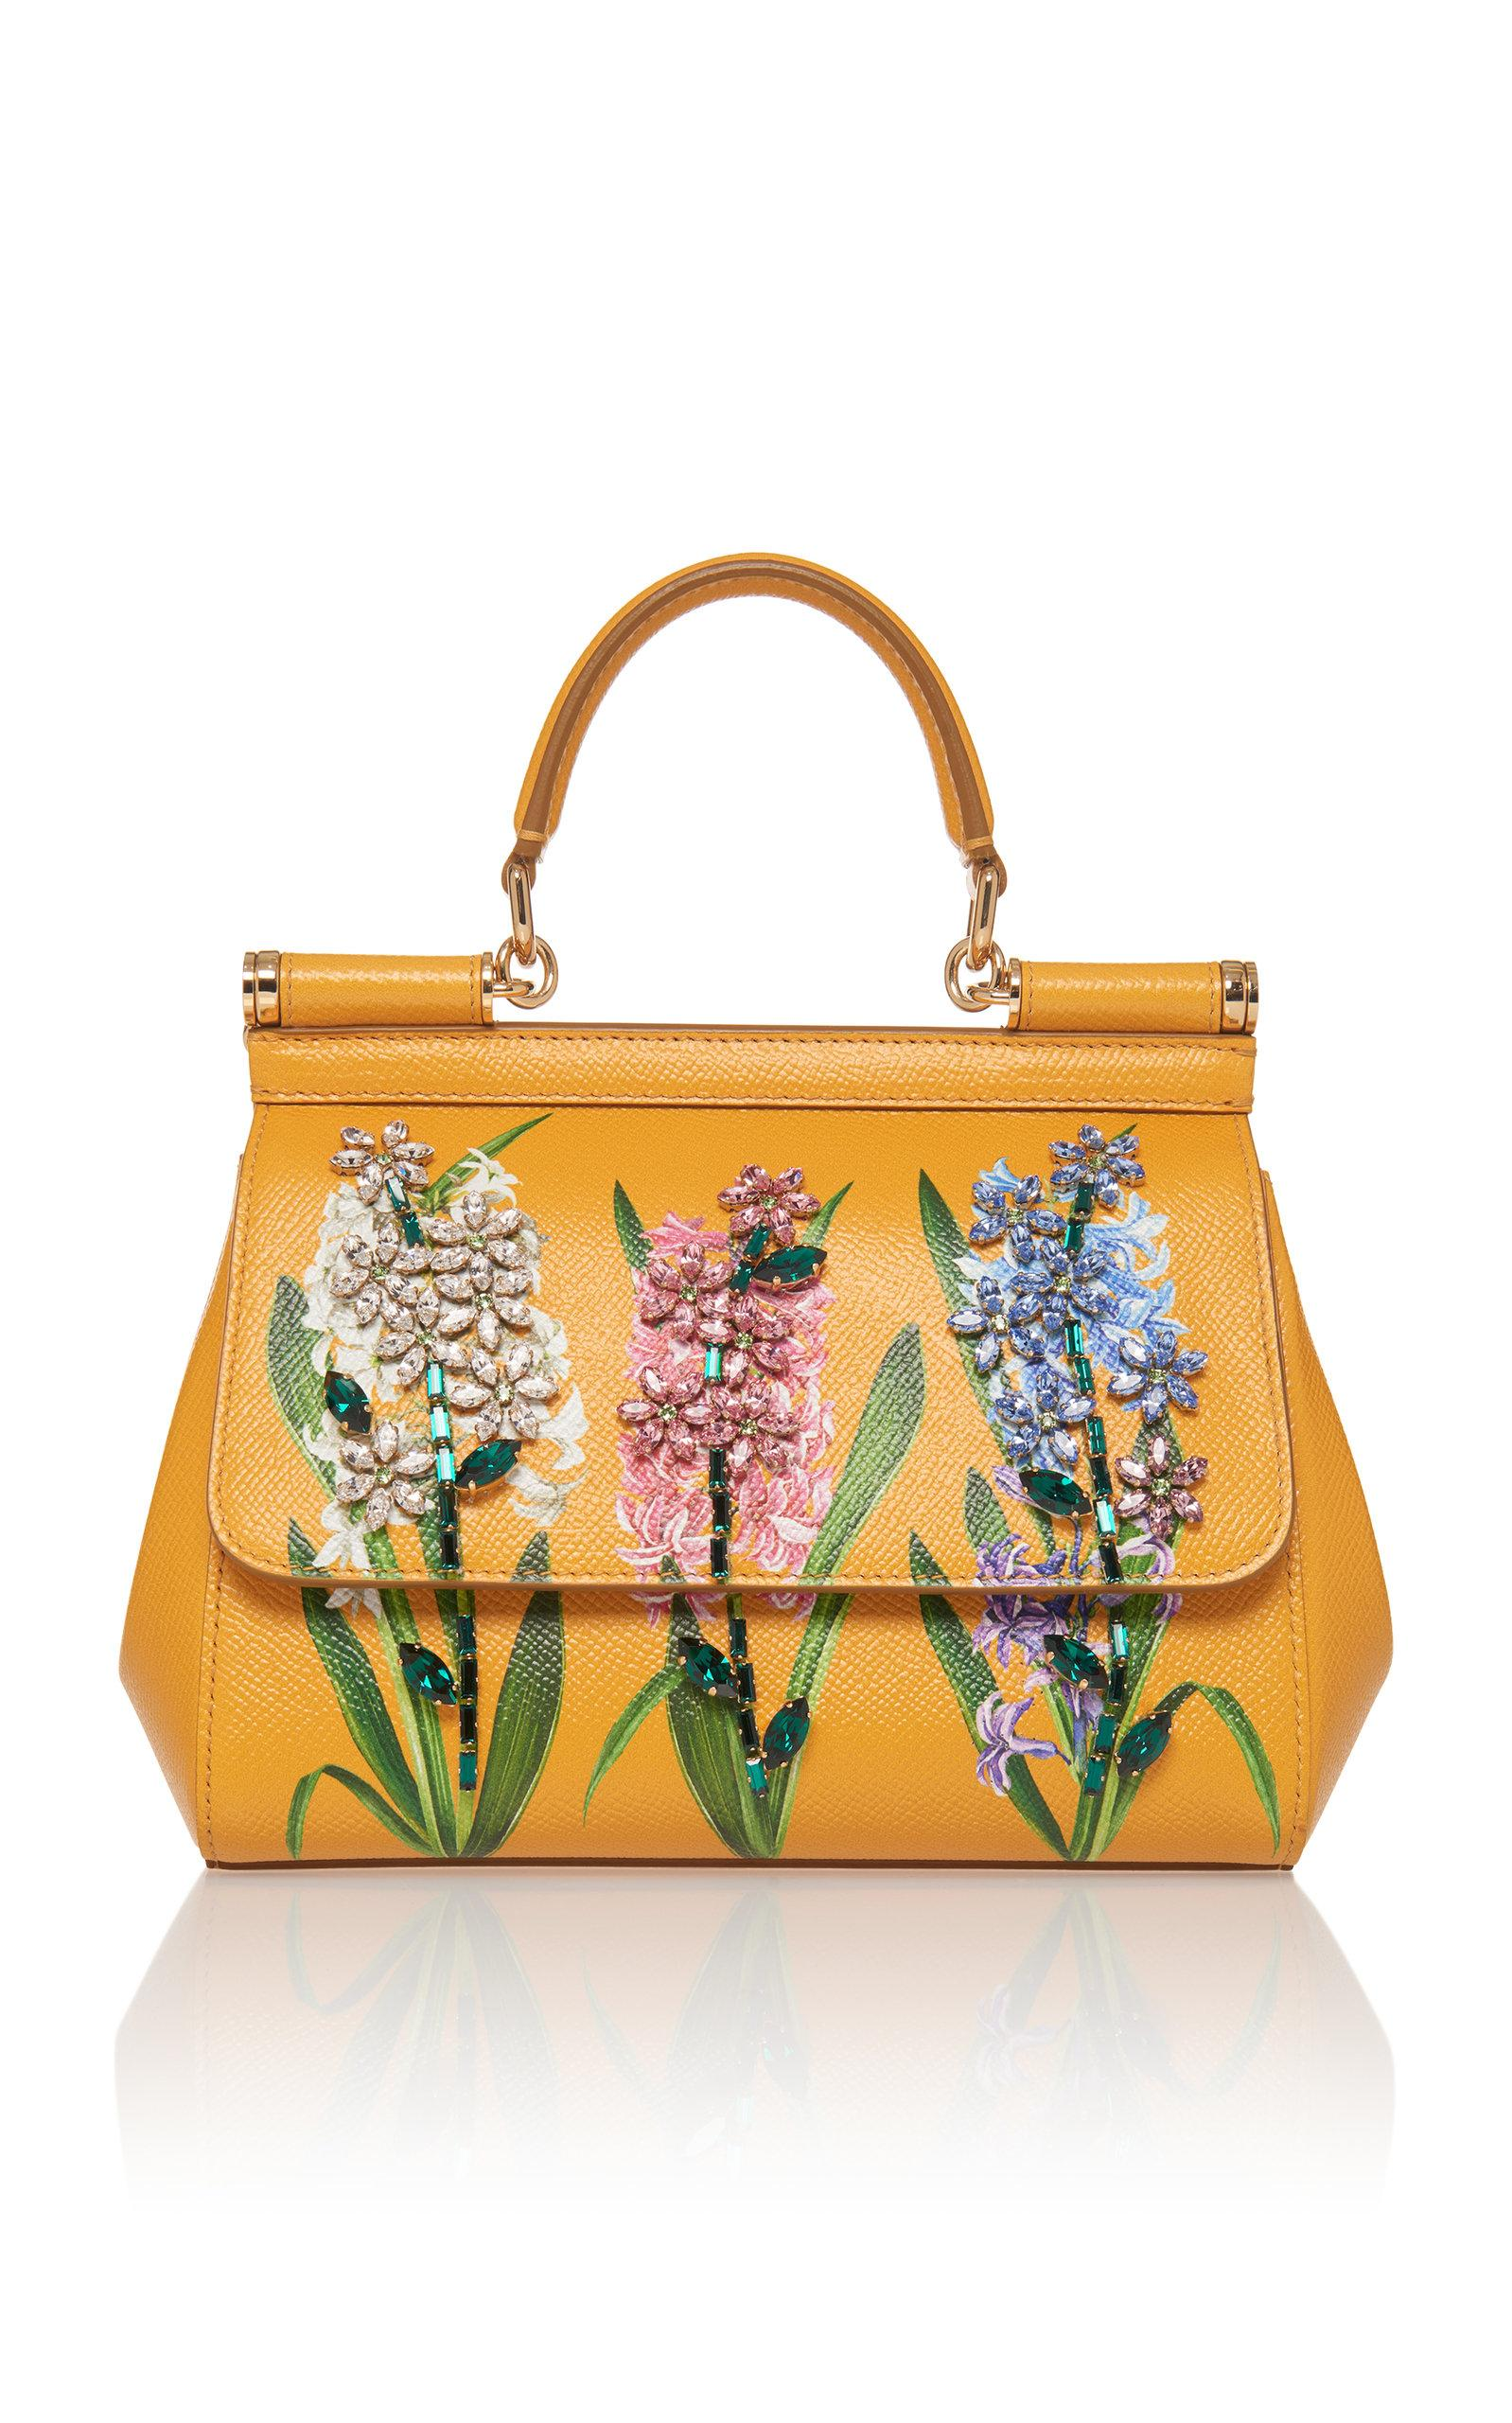 8b22837438 Dolce   Gabbana Sicily Handbag In Printed Dauphine Calfskin With  Embroideries In Marigold